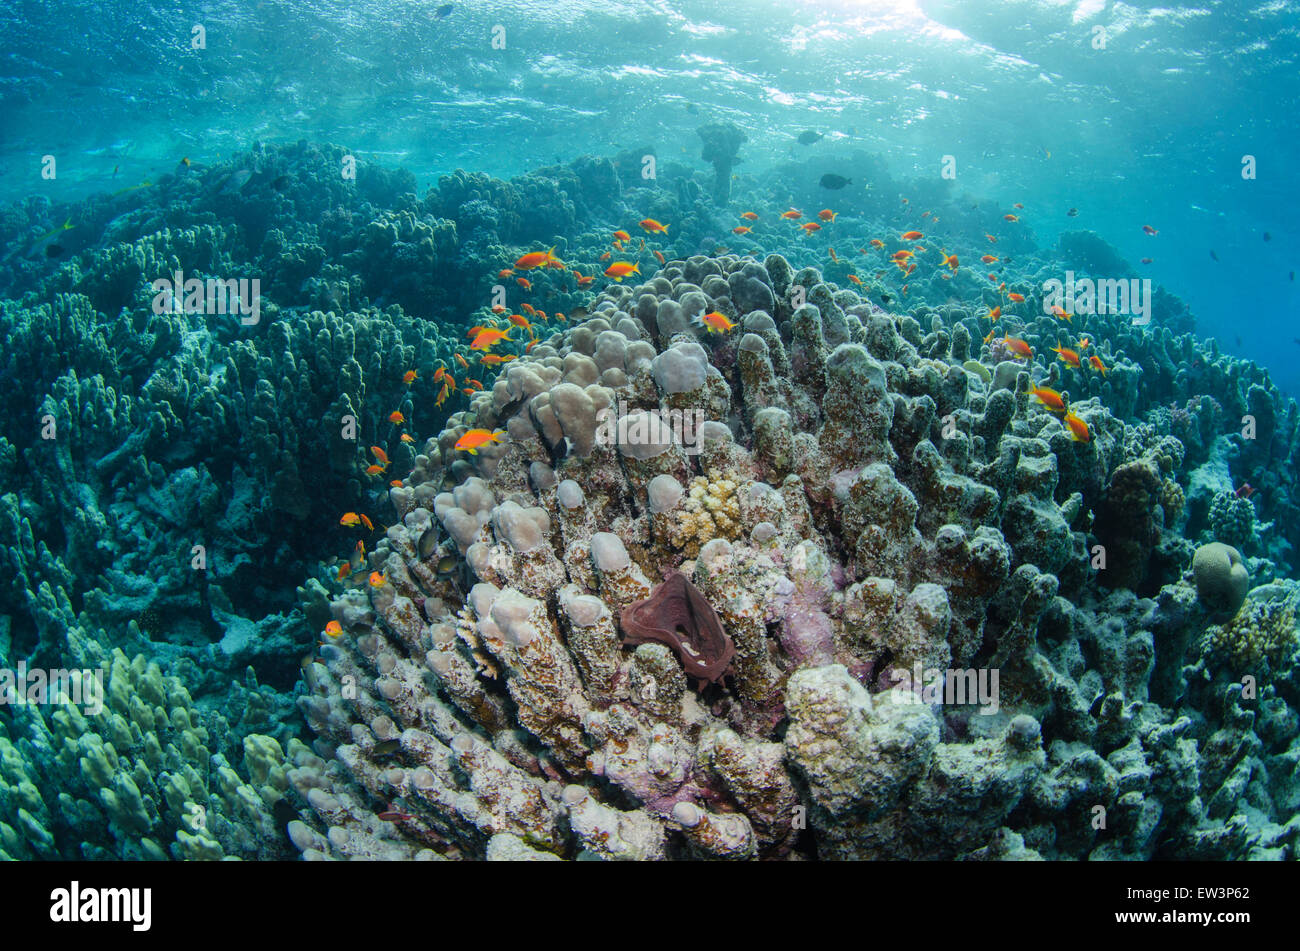 Sea Goldie's swimming over a reef in the Red Sea, Egypt. - Stock Image